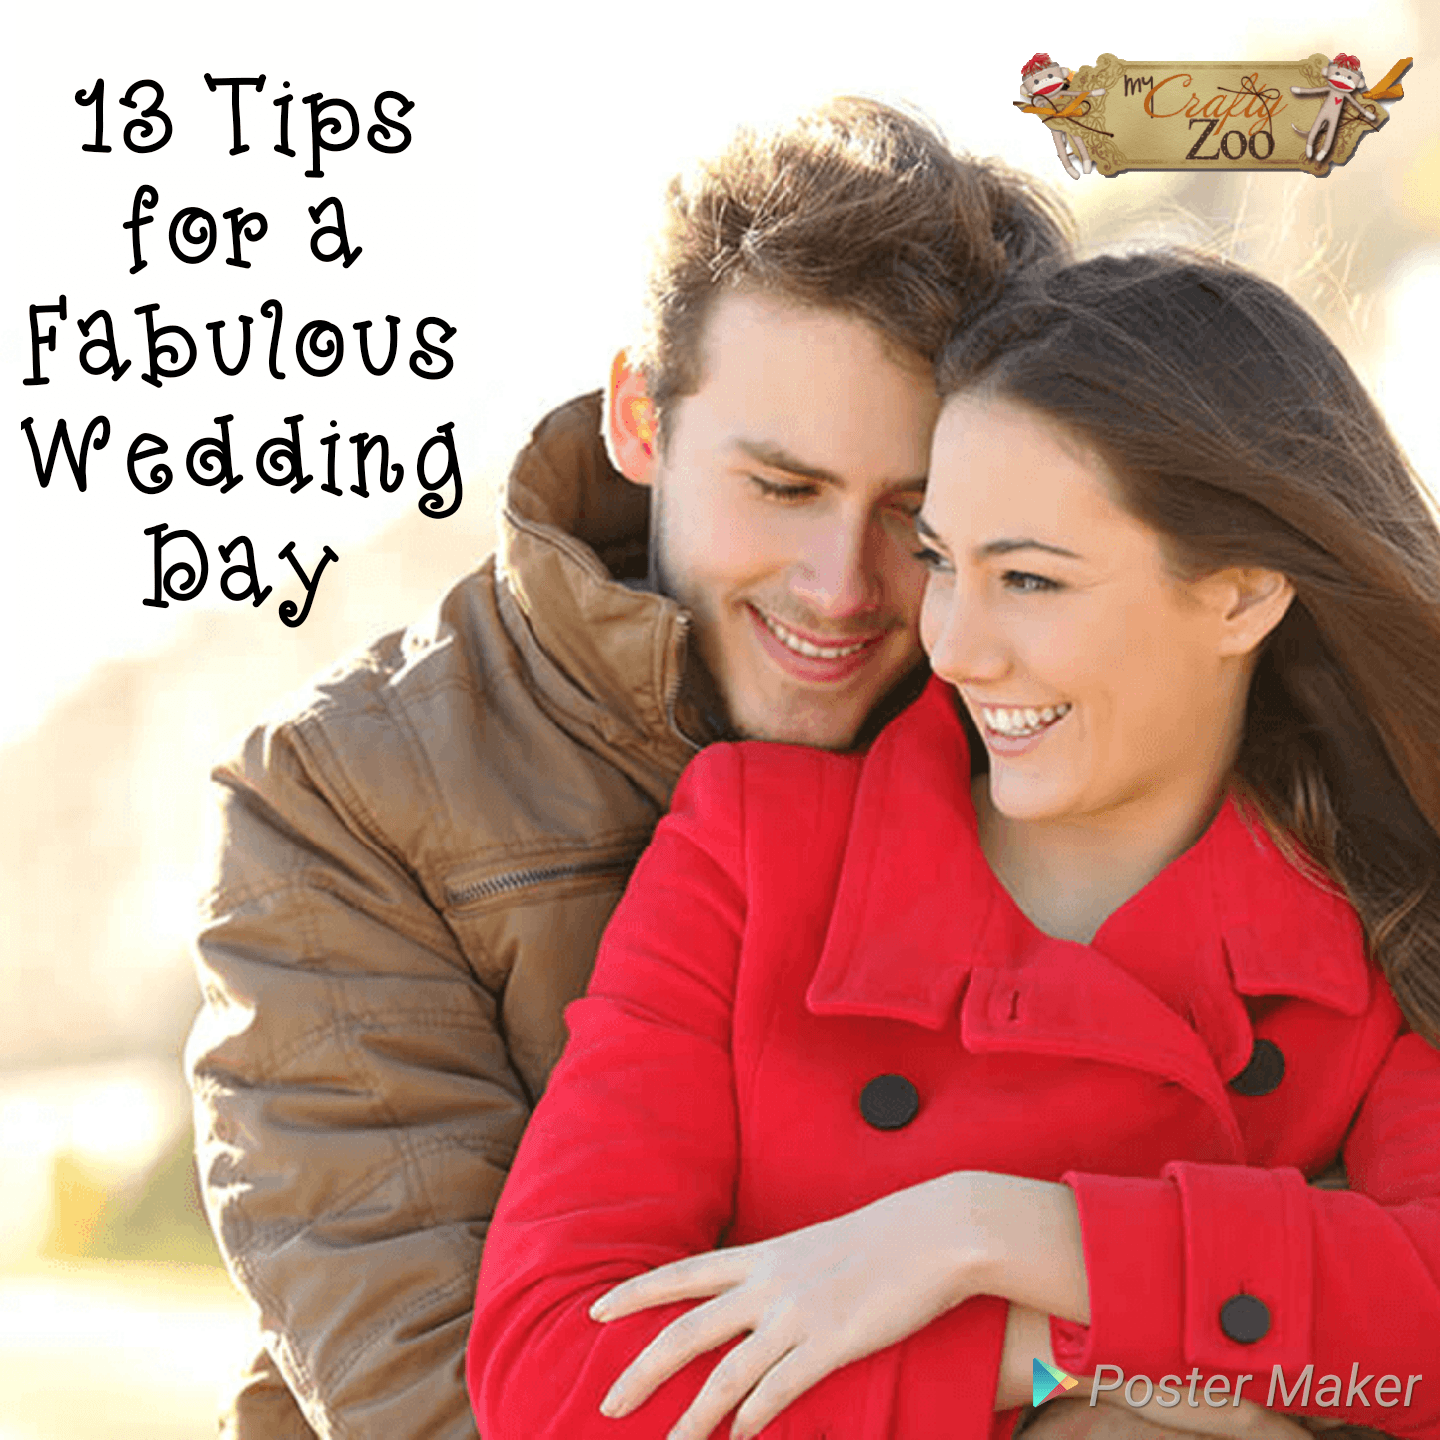 13 Tips for a Fabulous Wedding Day